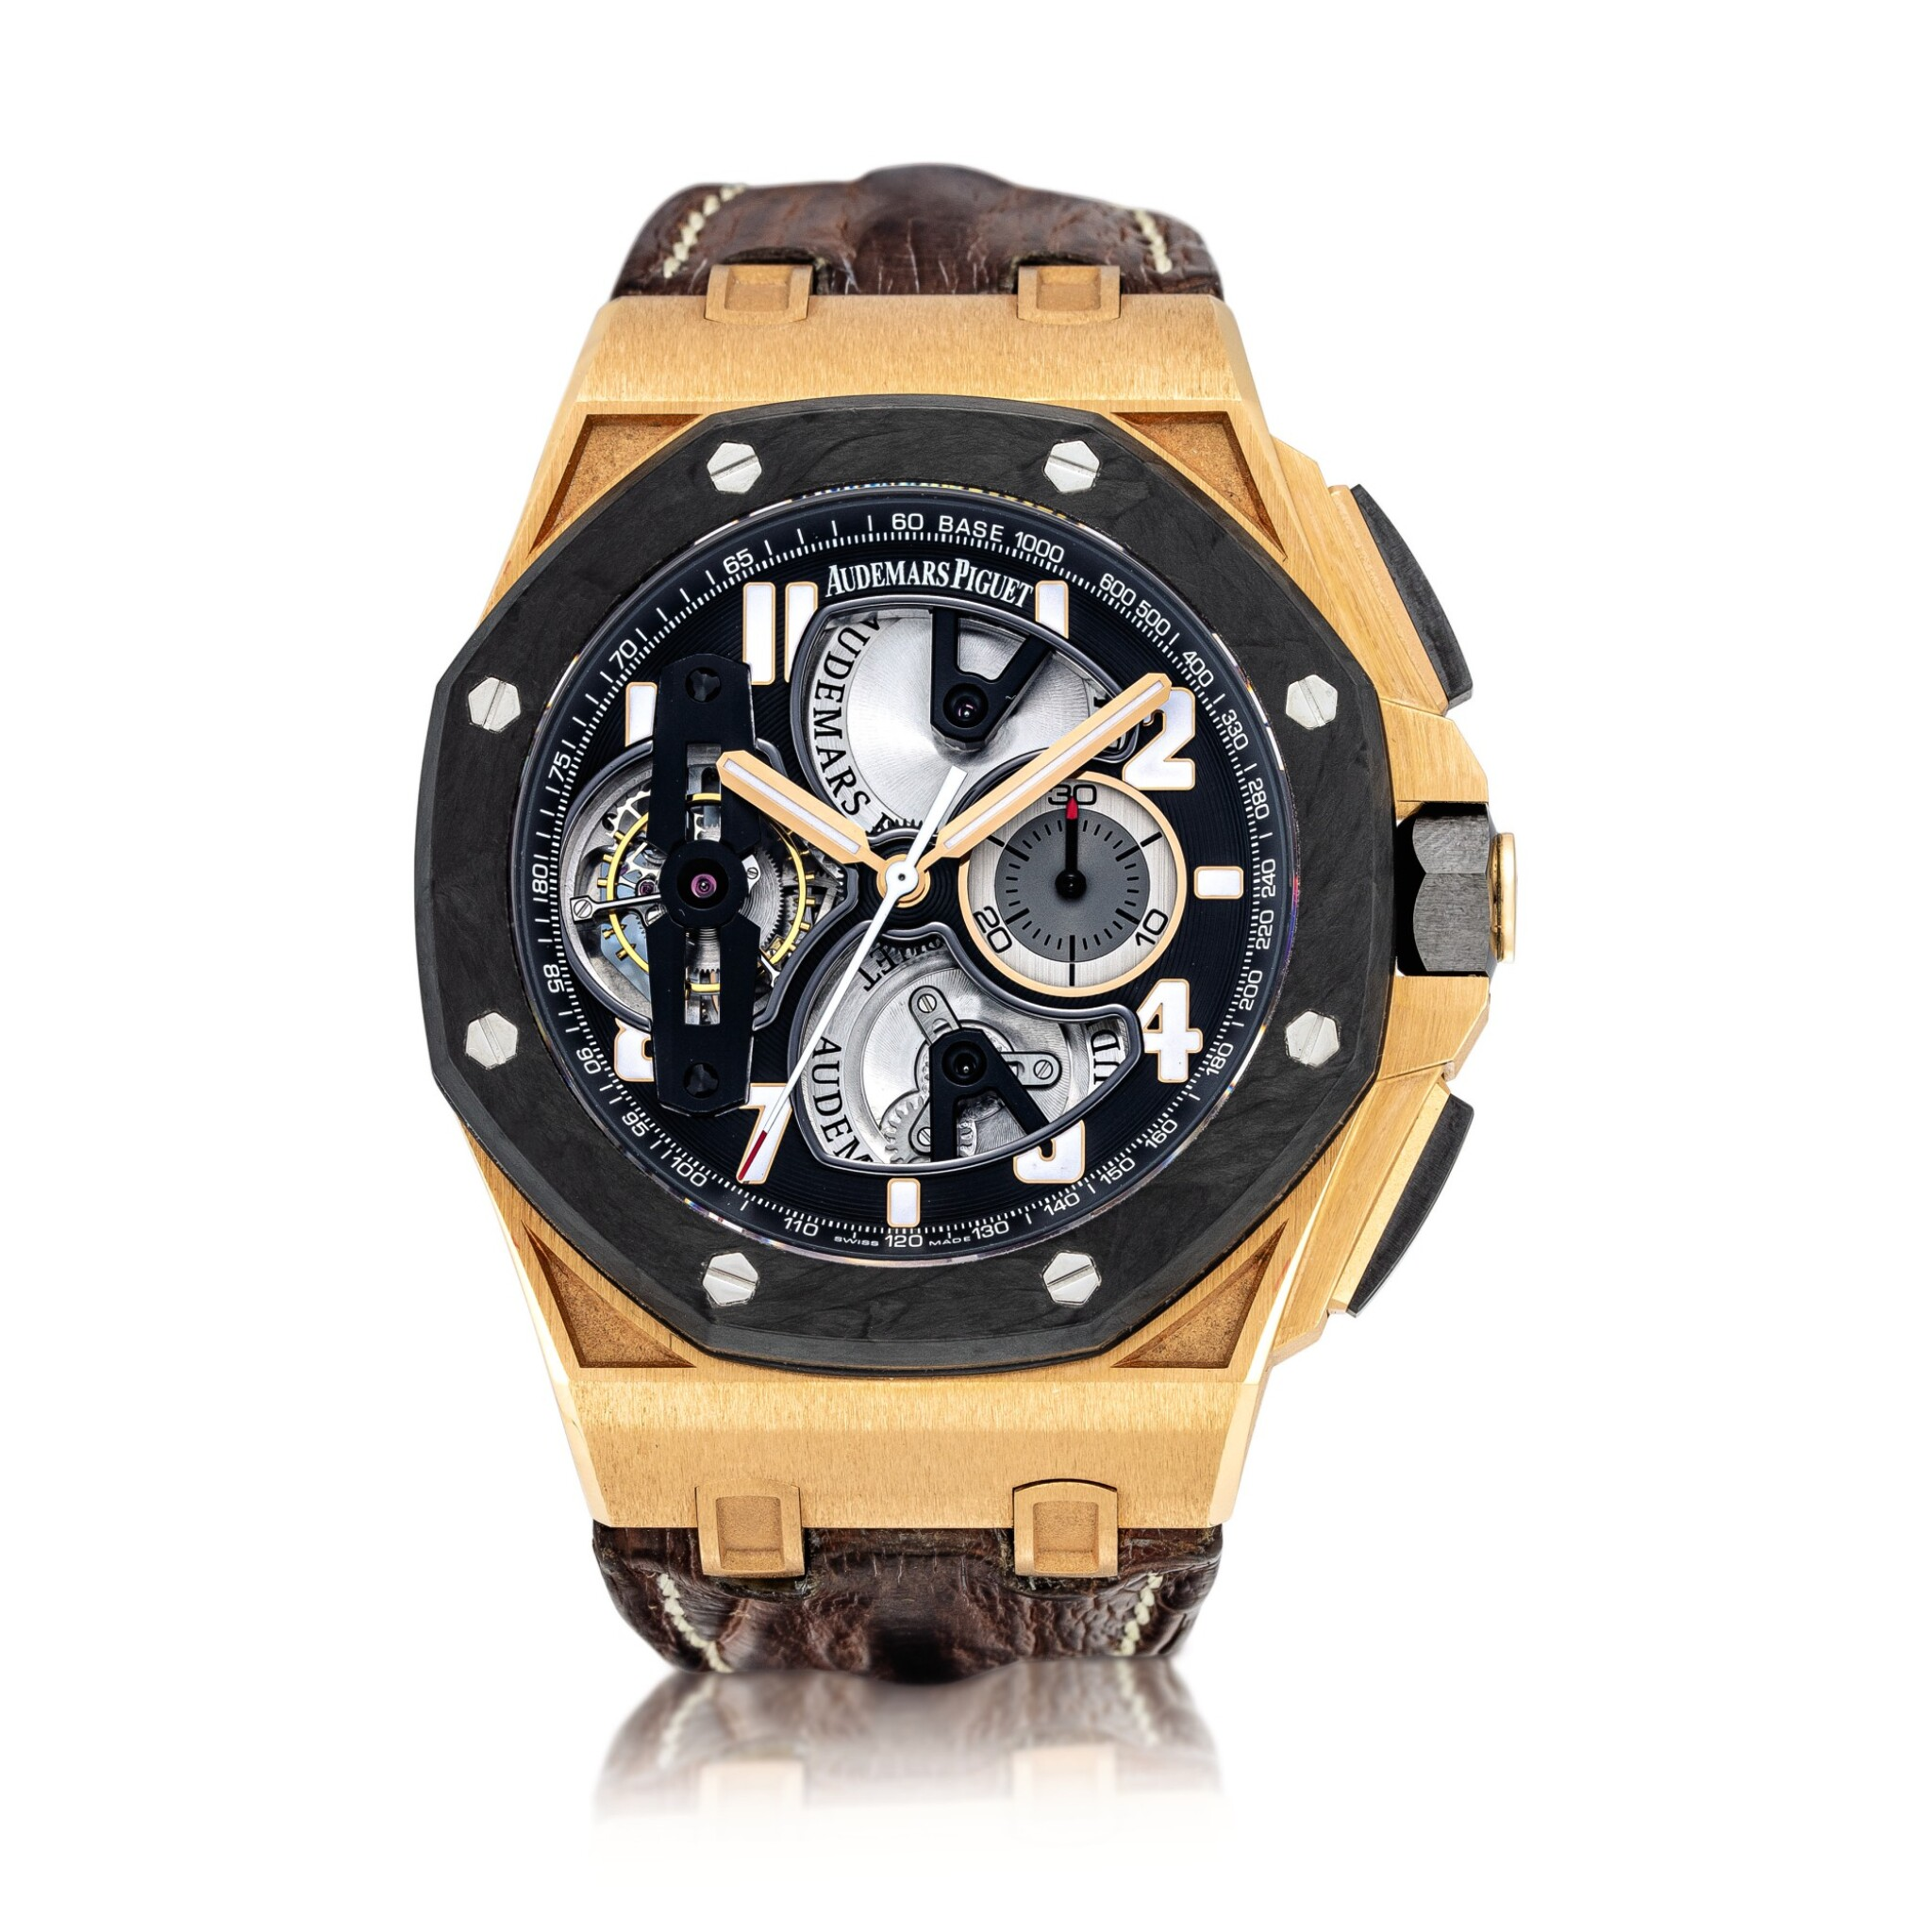 View full screen - View 1 of Lot 2240. Audemars Piguet | Royal Oak Offshore, Reference 26288OF.OO.D002CR.01, A pink gold and forged carbon semi-skeletonised tourbillon chronograph wristwatch, Circa 2010 | 愛彼 | 皇家橡樹離岸型系列 型號26288OF.OO.D002CR.01  粉紅金及鍛碳半鏤空陀飛輪計時腕錶,約2010年製.